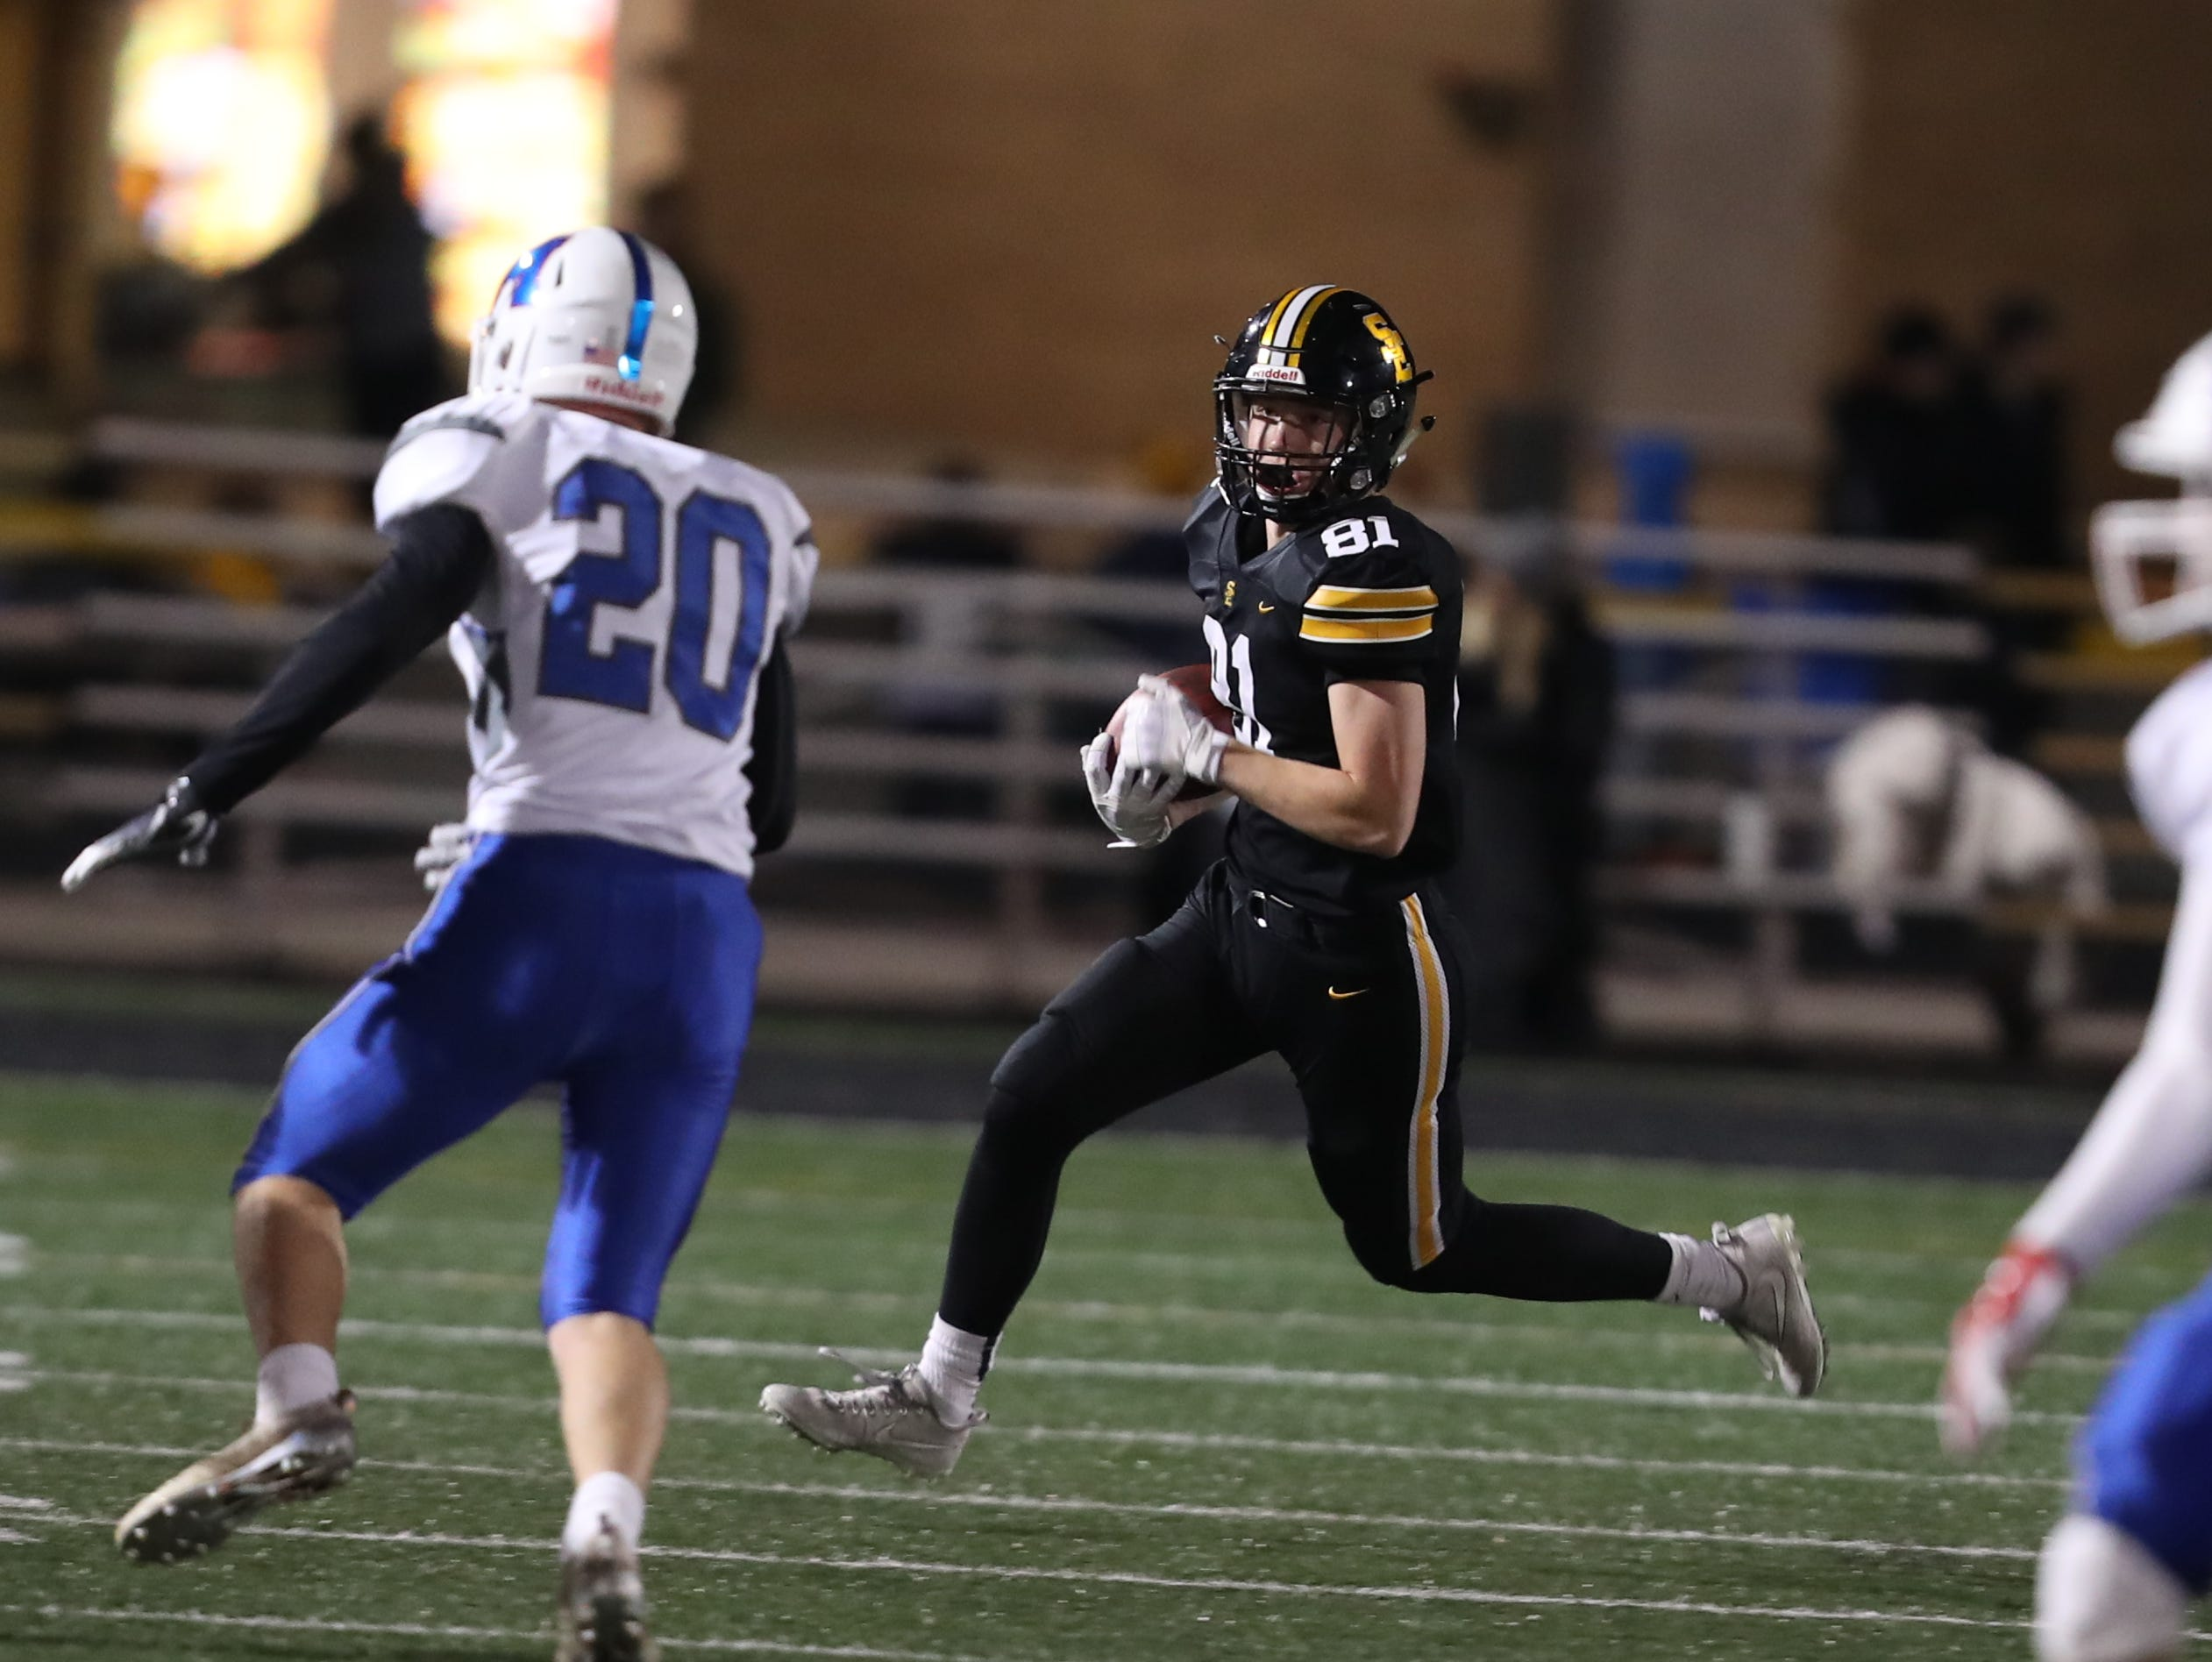 Southeast Polk Rams Brock Stiles (81) carries the football against the Marshalltown Bobcats at SE Polk Stadium. The Rams beat the Bobcats 56 to 7.